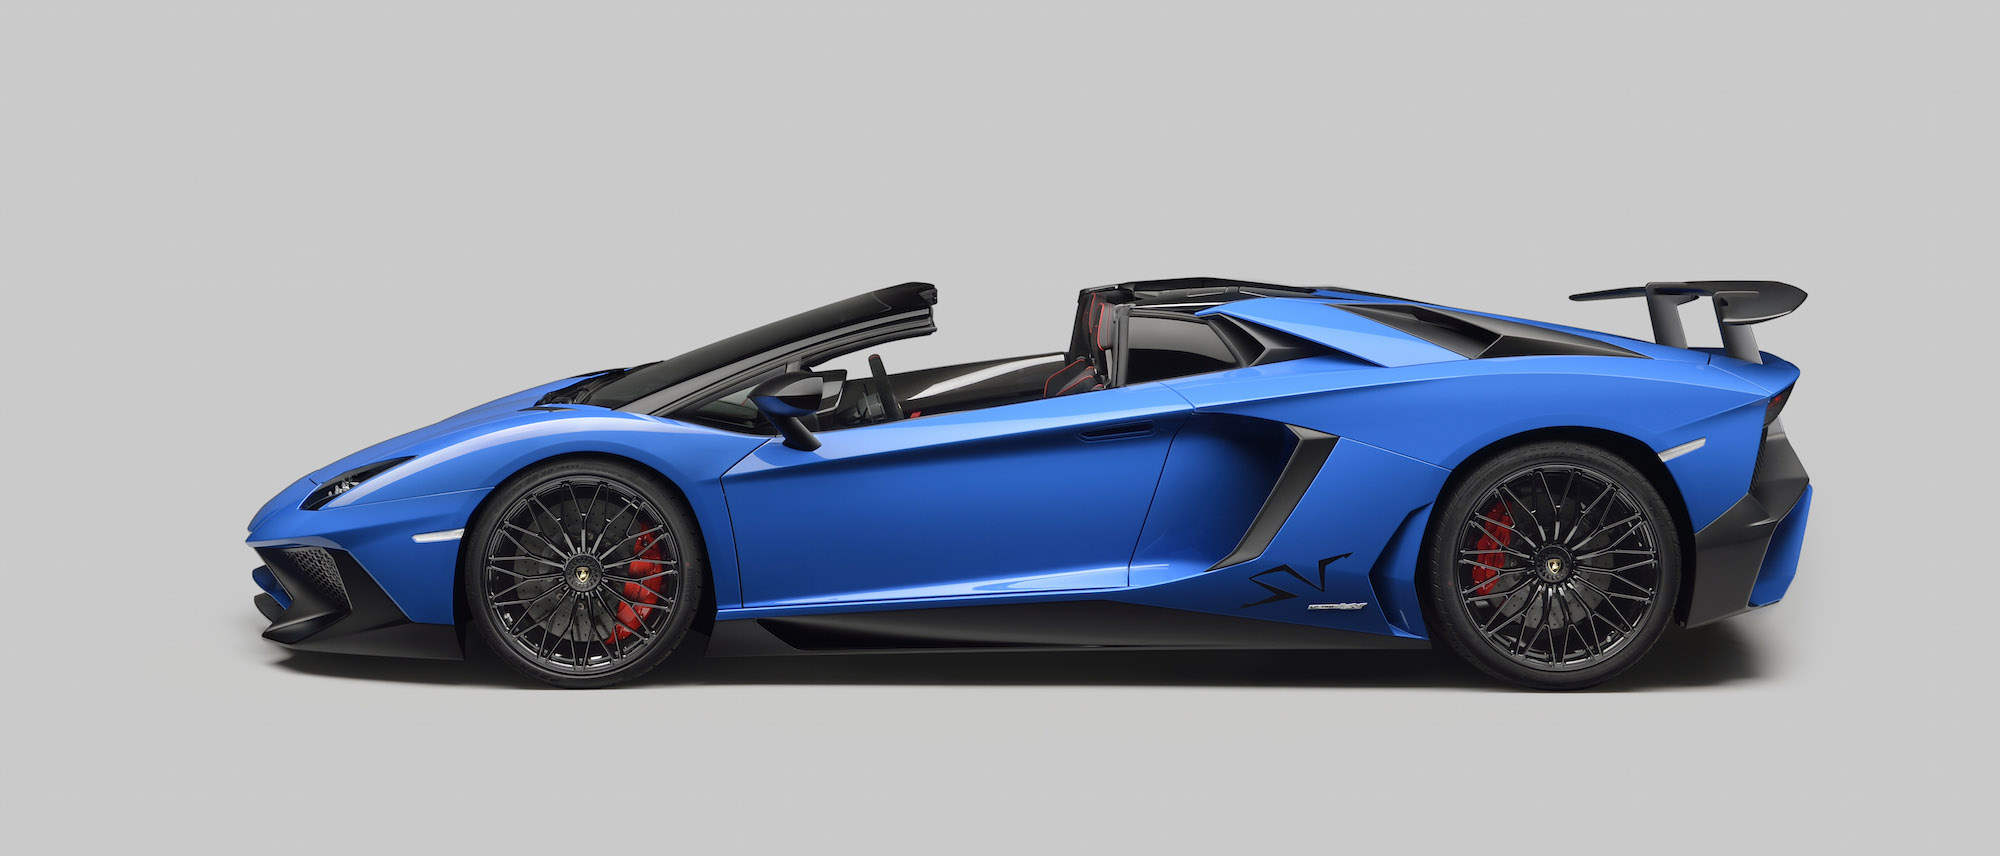 Lamborghini Debuts Aventador Superveloce Roadster And